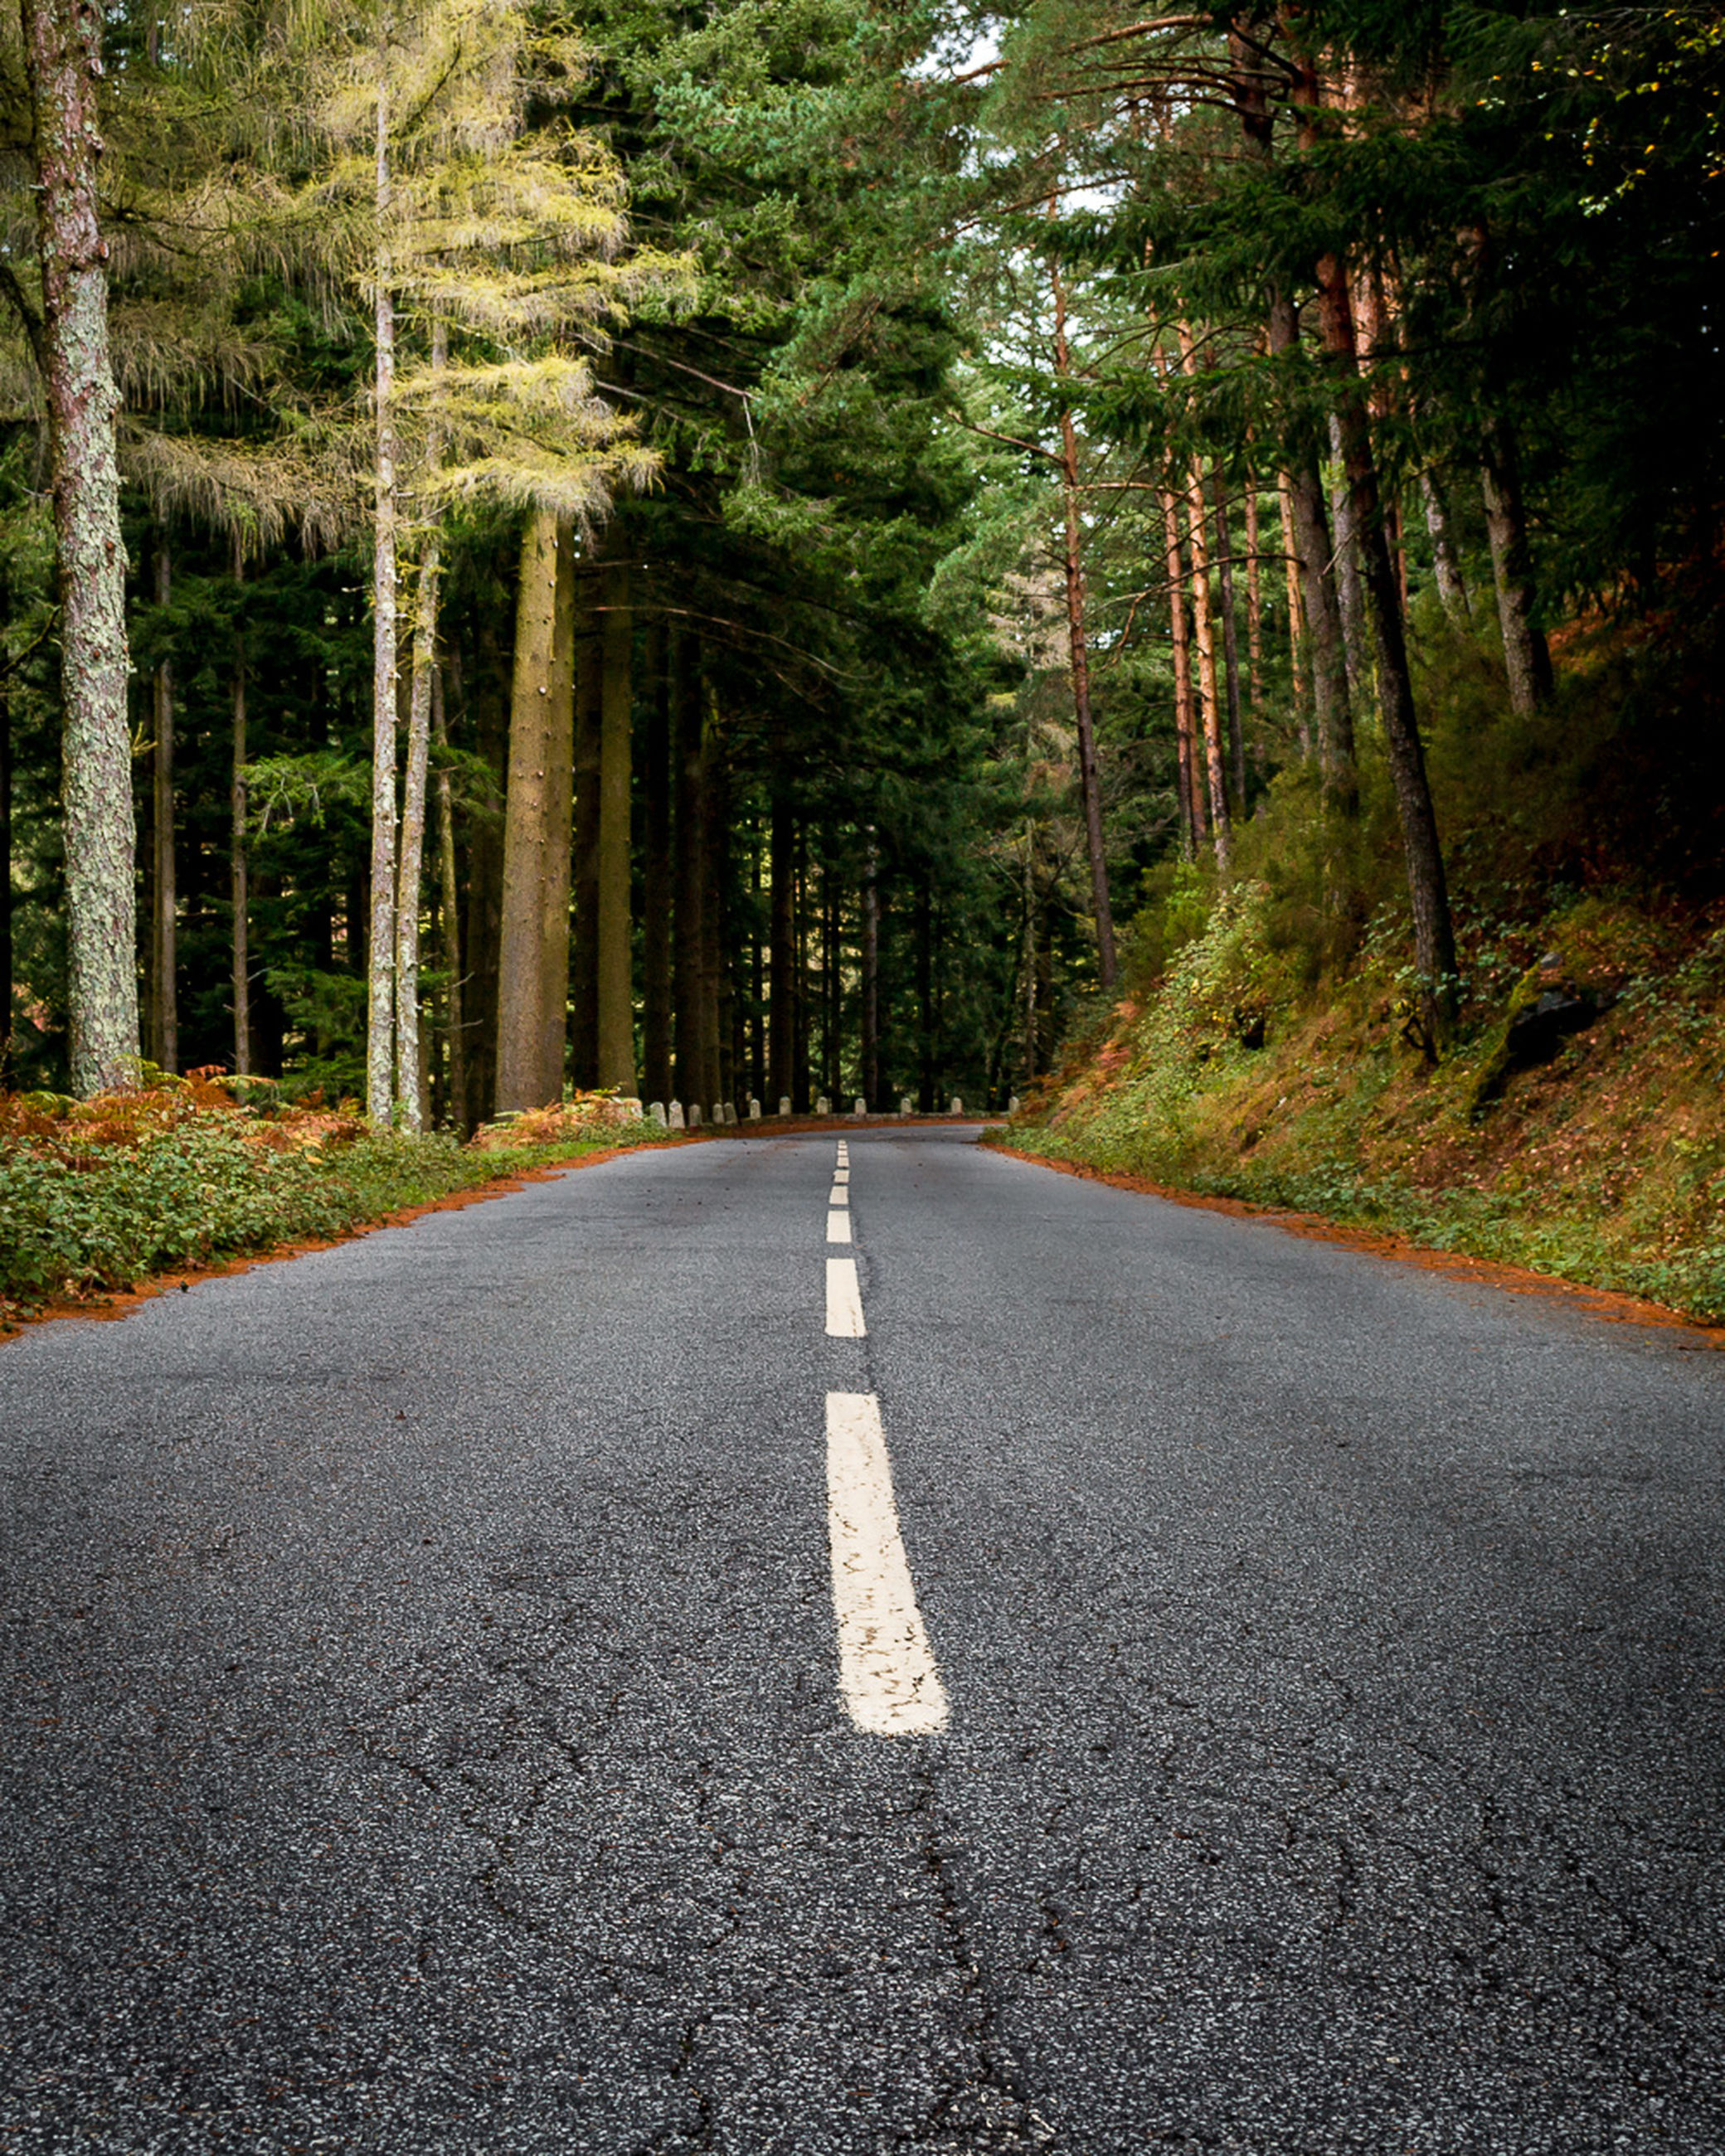 road, forest, tree, direction, plant, land, transportation, the way forward, no people, nature, sign, asphalt, day, symbol, road marking, landscape, country road, rural scene, beauty in nature, country, woodland, outdoors, pine tree, pine woodland